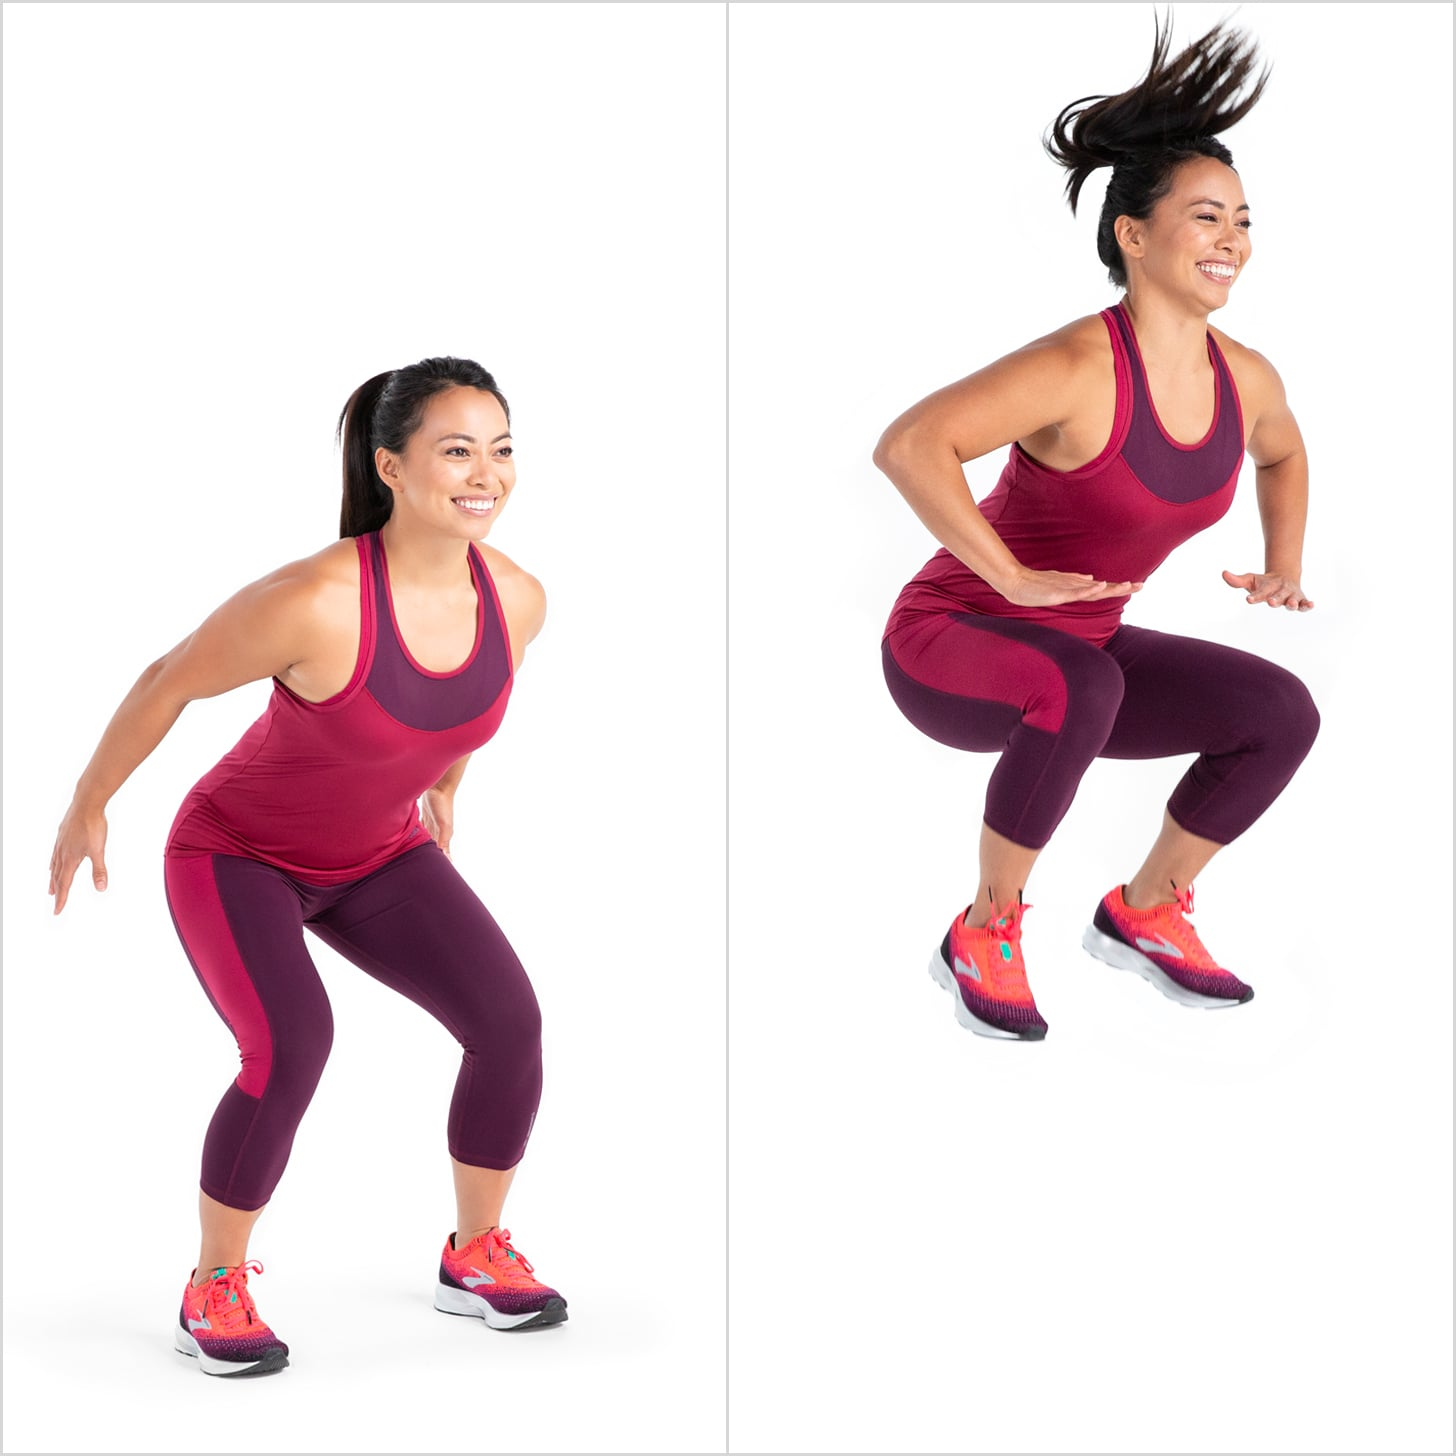 Tuck Jump | Carve Your Core With 10 Minutes of Cardio | POPSUGAR Fitness Photo 10